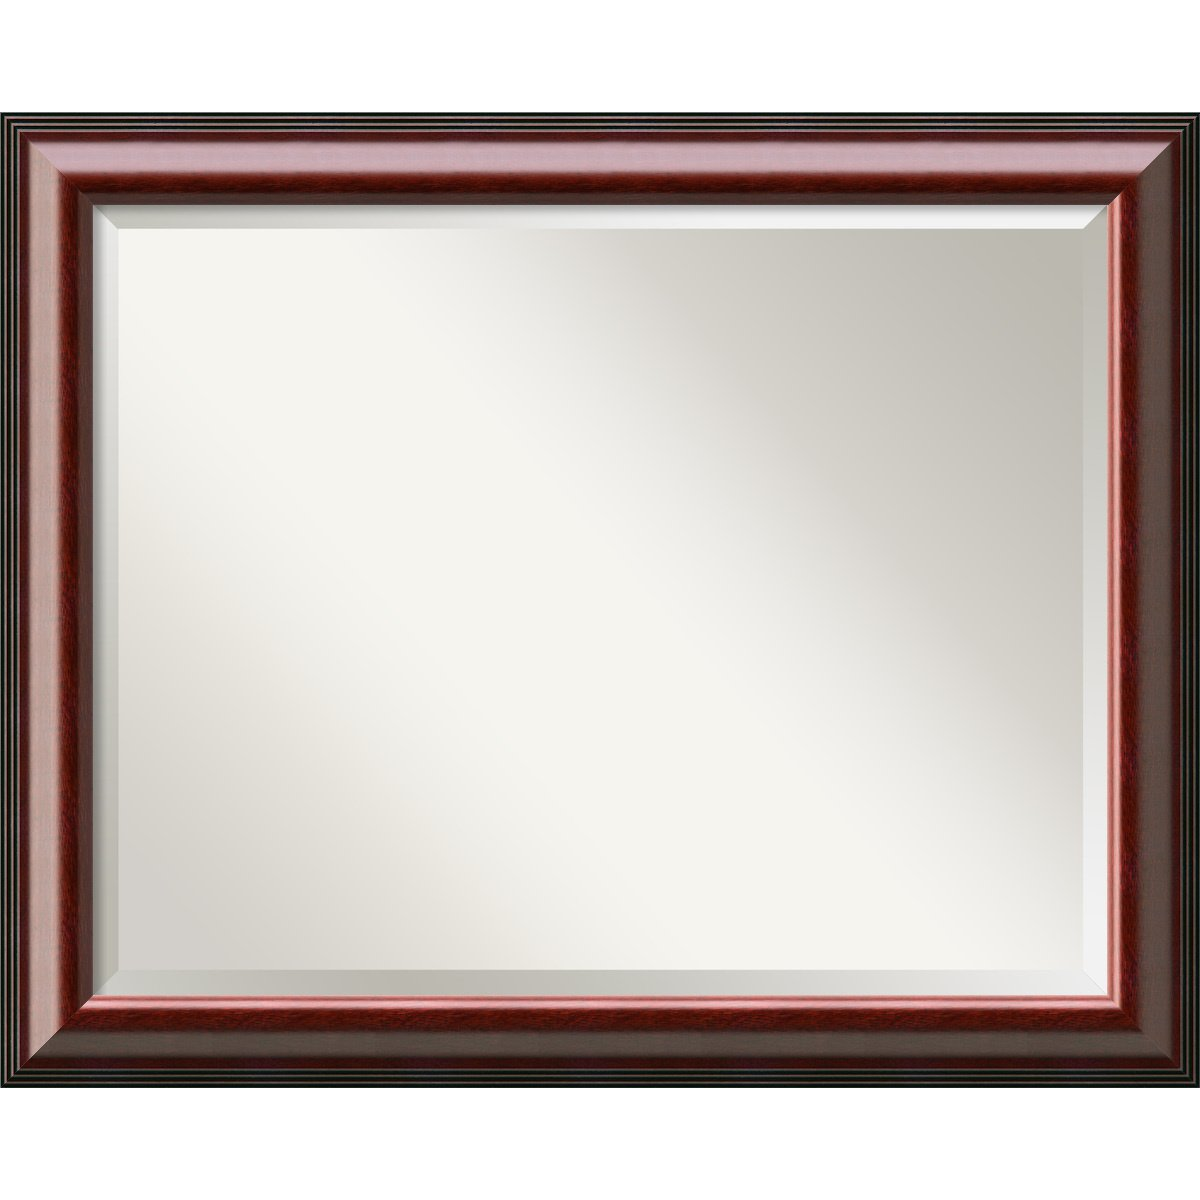 Brown Large-33 x 27  Wall Mirror Large, Cyprus Walnut Wood  Outer Size 33 x 27